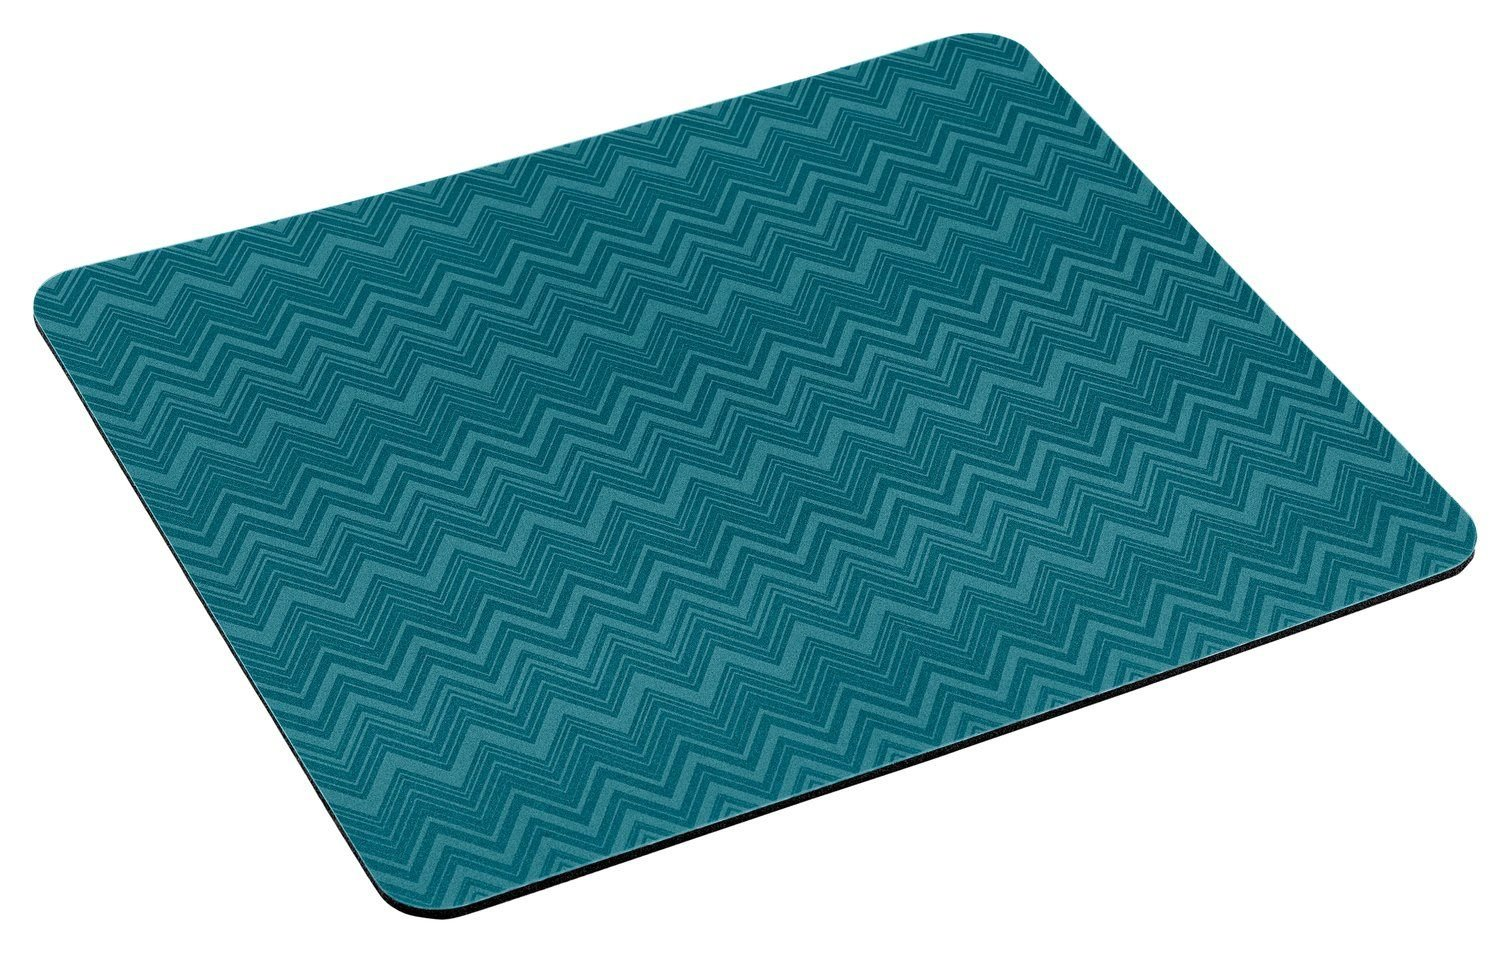 3M Precise Optical Mouse Pad, Chevron Design, (MP114-GR) 3M Canada Company - HPC